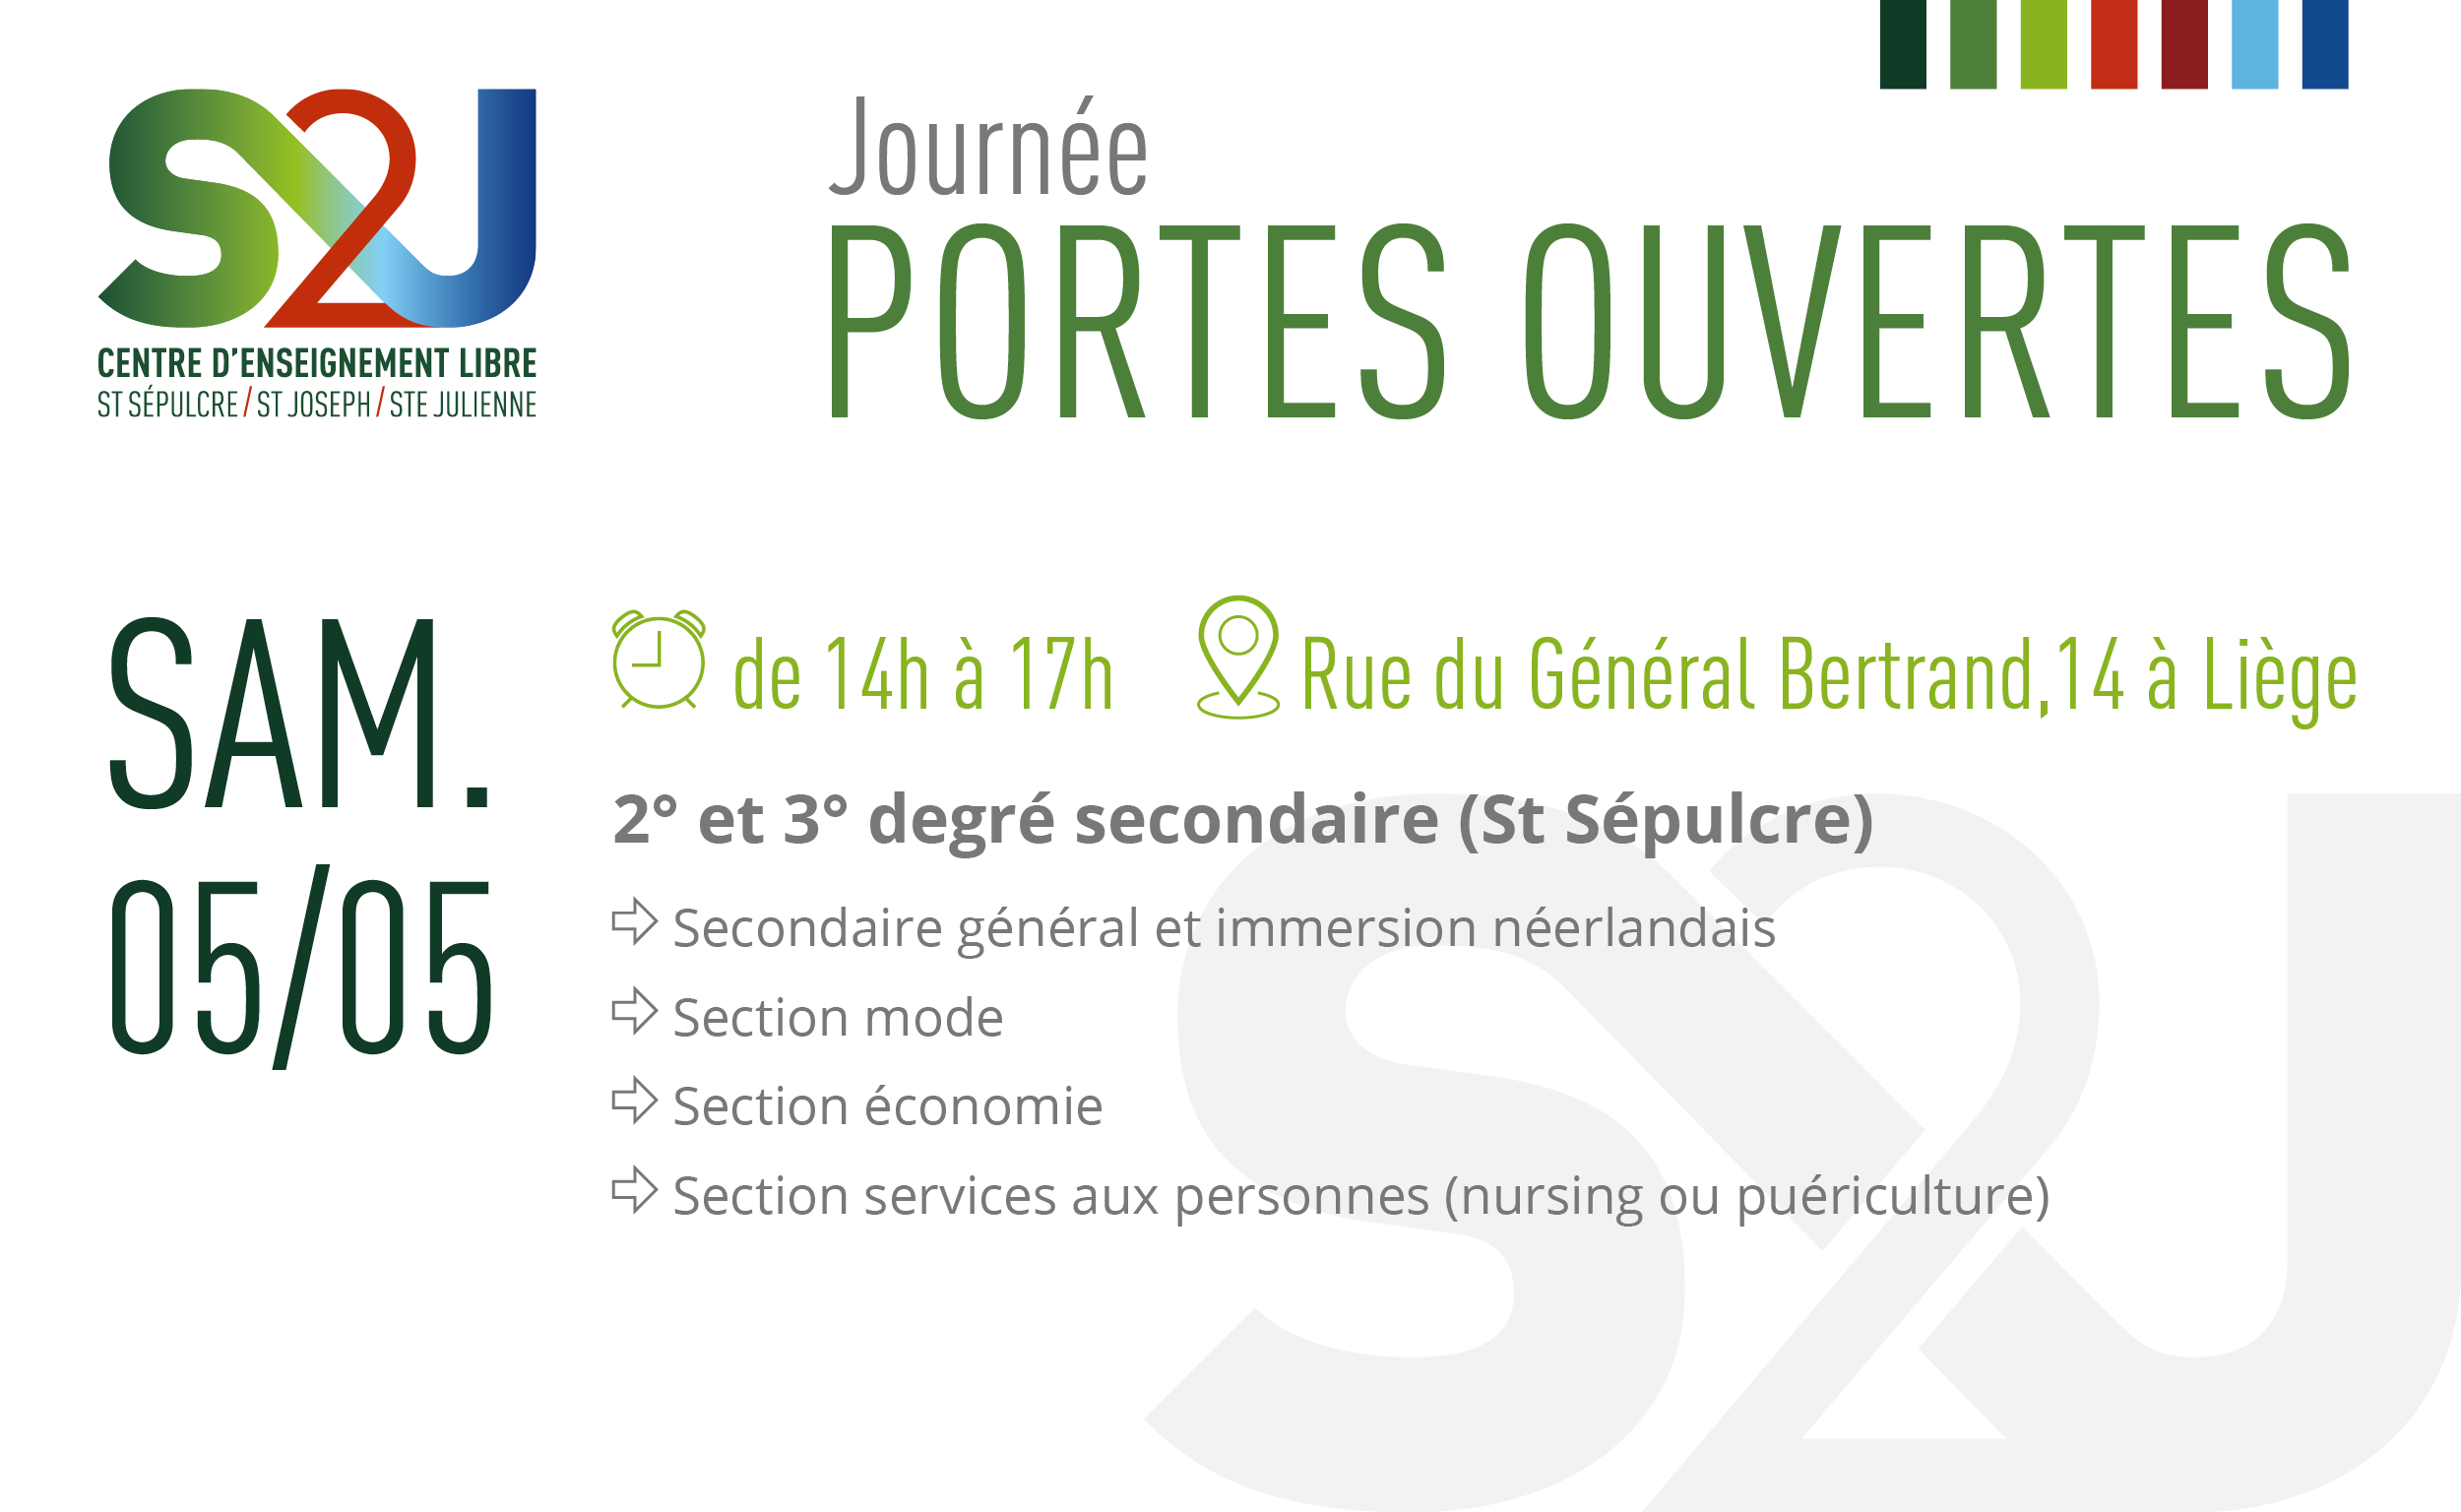 S2J - Journée Portes Ouvertes - 05 mai de 14h à 17h - 2ème et 3ème degré secondaire (St Sépulcre) : Secondaire général et immersion néerlandais, section mode, section économie, section services aux personnes (nursing ou puériculture)